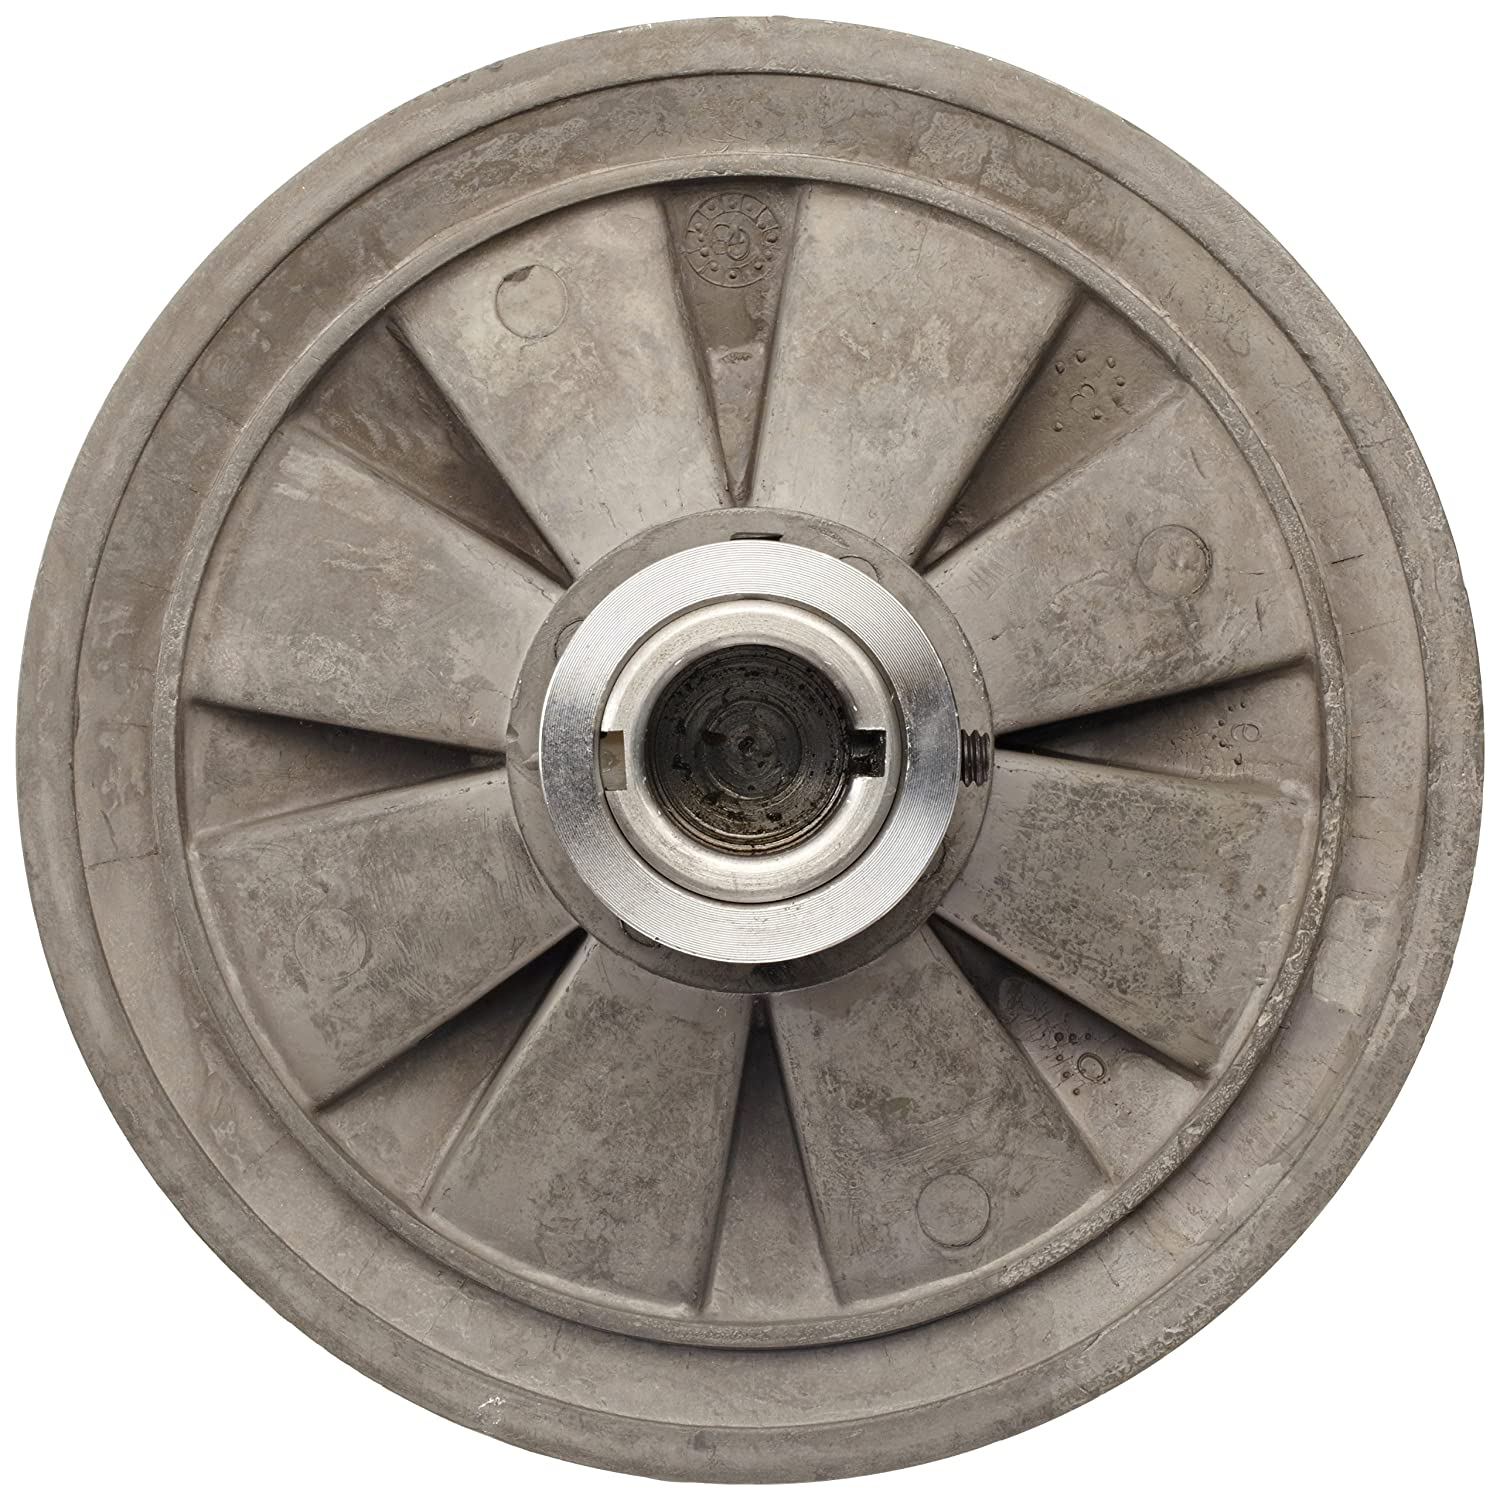 Lovejoy 145 Aluminoline Variable Speed Pulley 4.5 OD 4.81 Overall Length 3//4 Bore 18 inch-pounds Torque Capacity